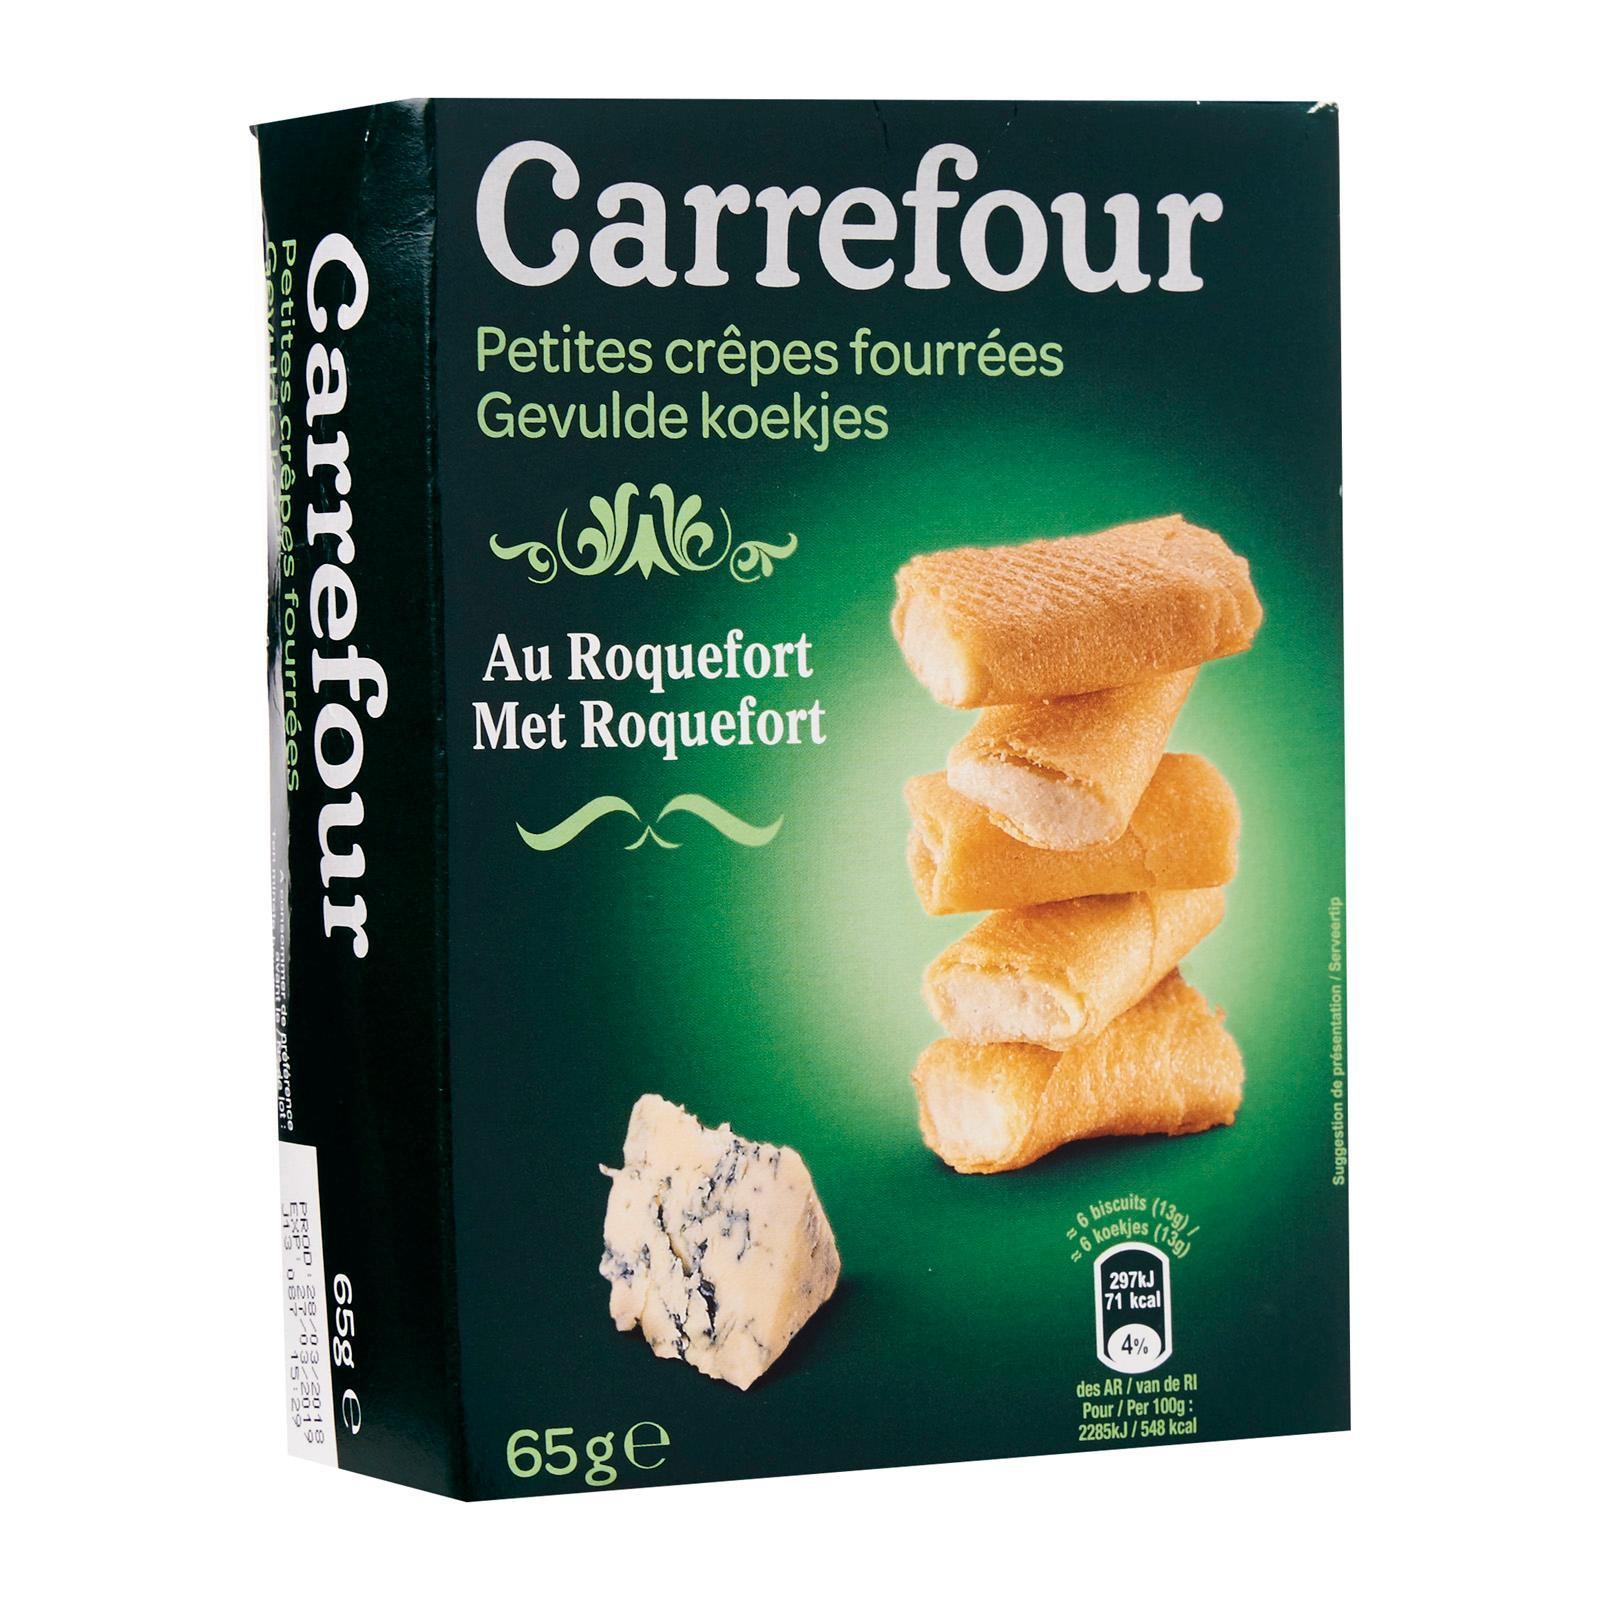 Carrefour Stuffed Pancakes - Roquefort - By Le Petit Depot By Redmart.